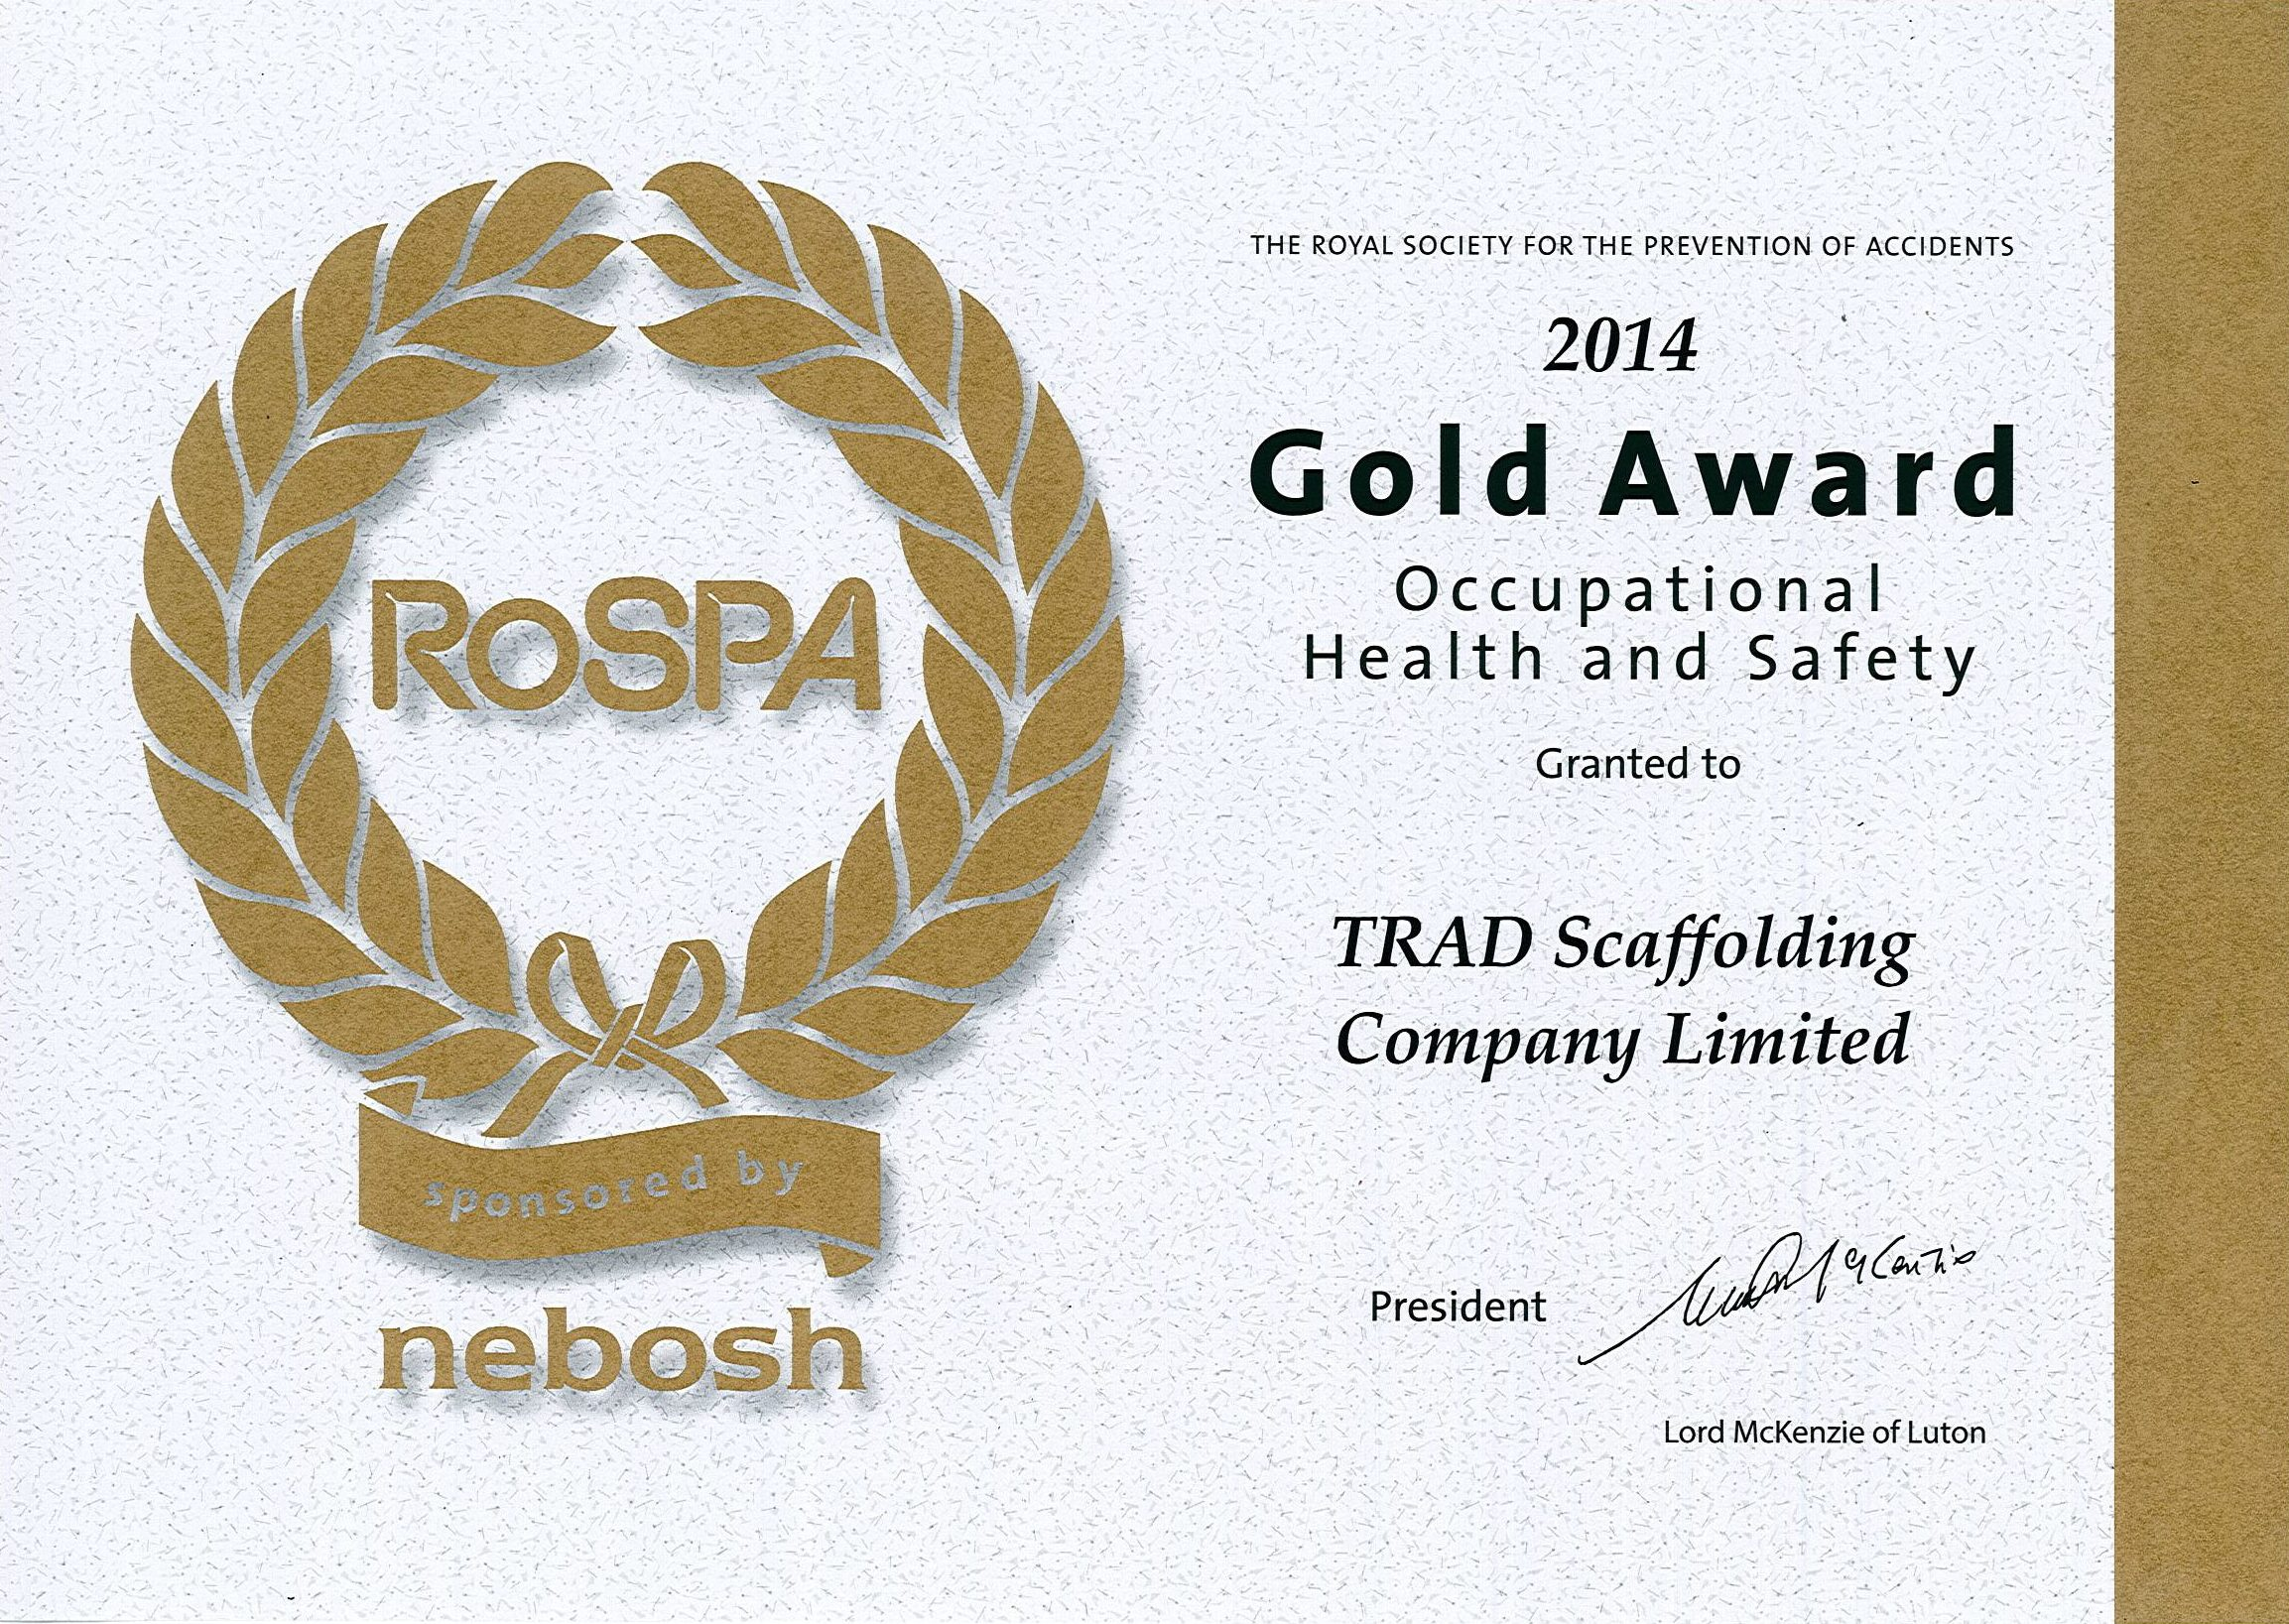 ROSPA Gold Award Occupational Health & Safety